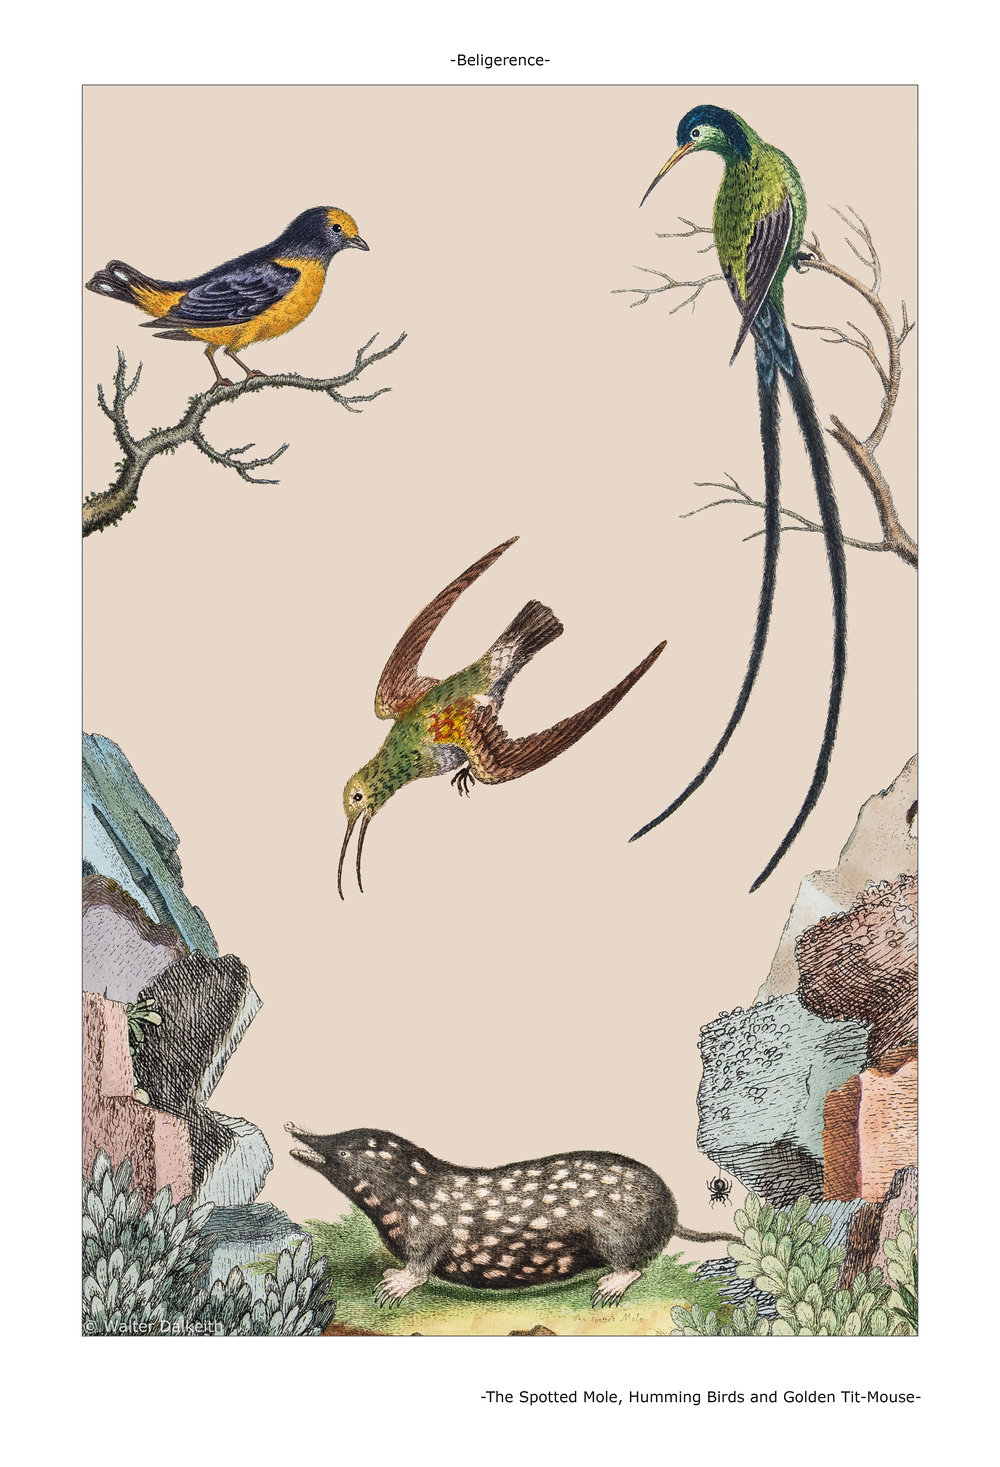 The Spotted Mole, Humming Birds and Golden Tit-Mouse Main title.jpg